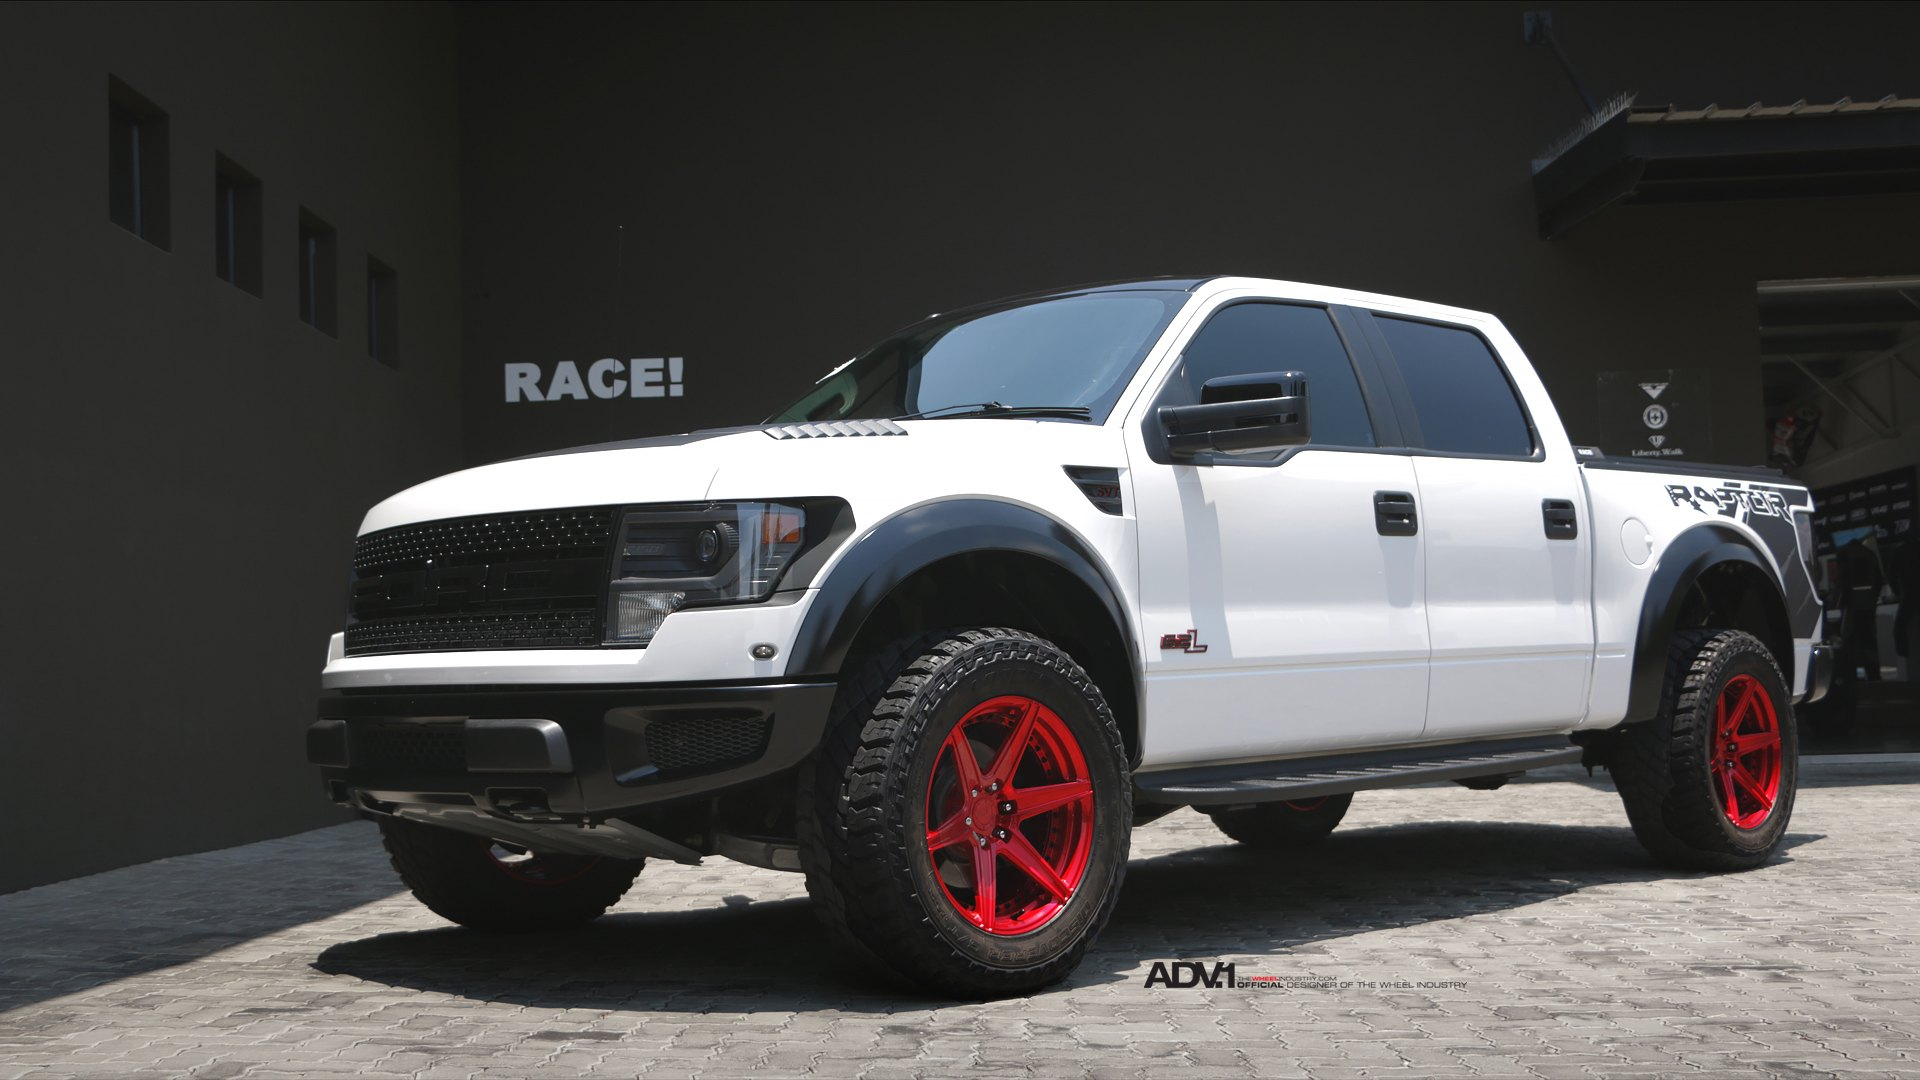 White Raptor On Red Adv 1 Offroad Wheels Carid Com Gallery